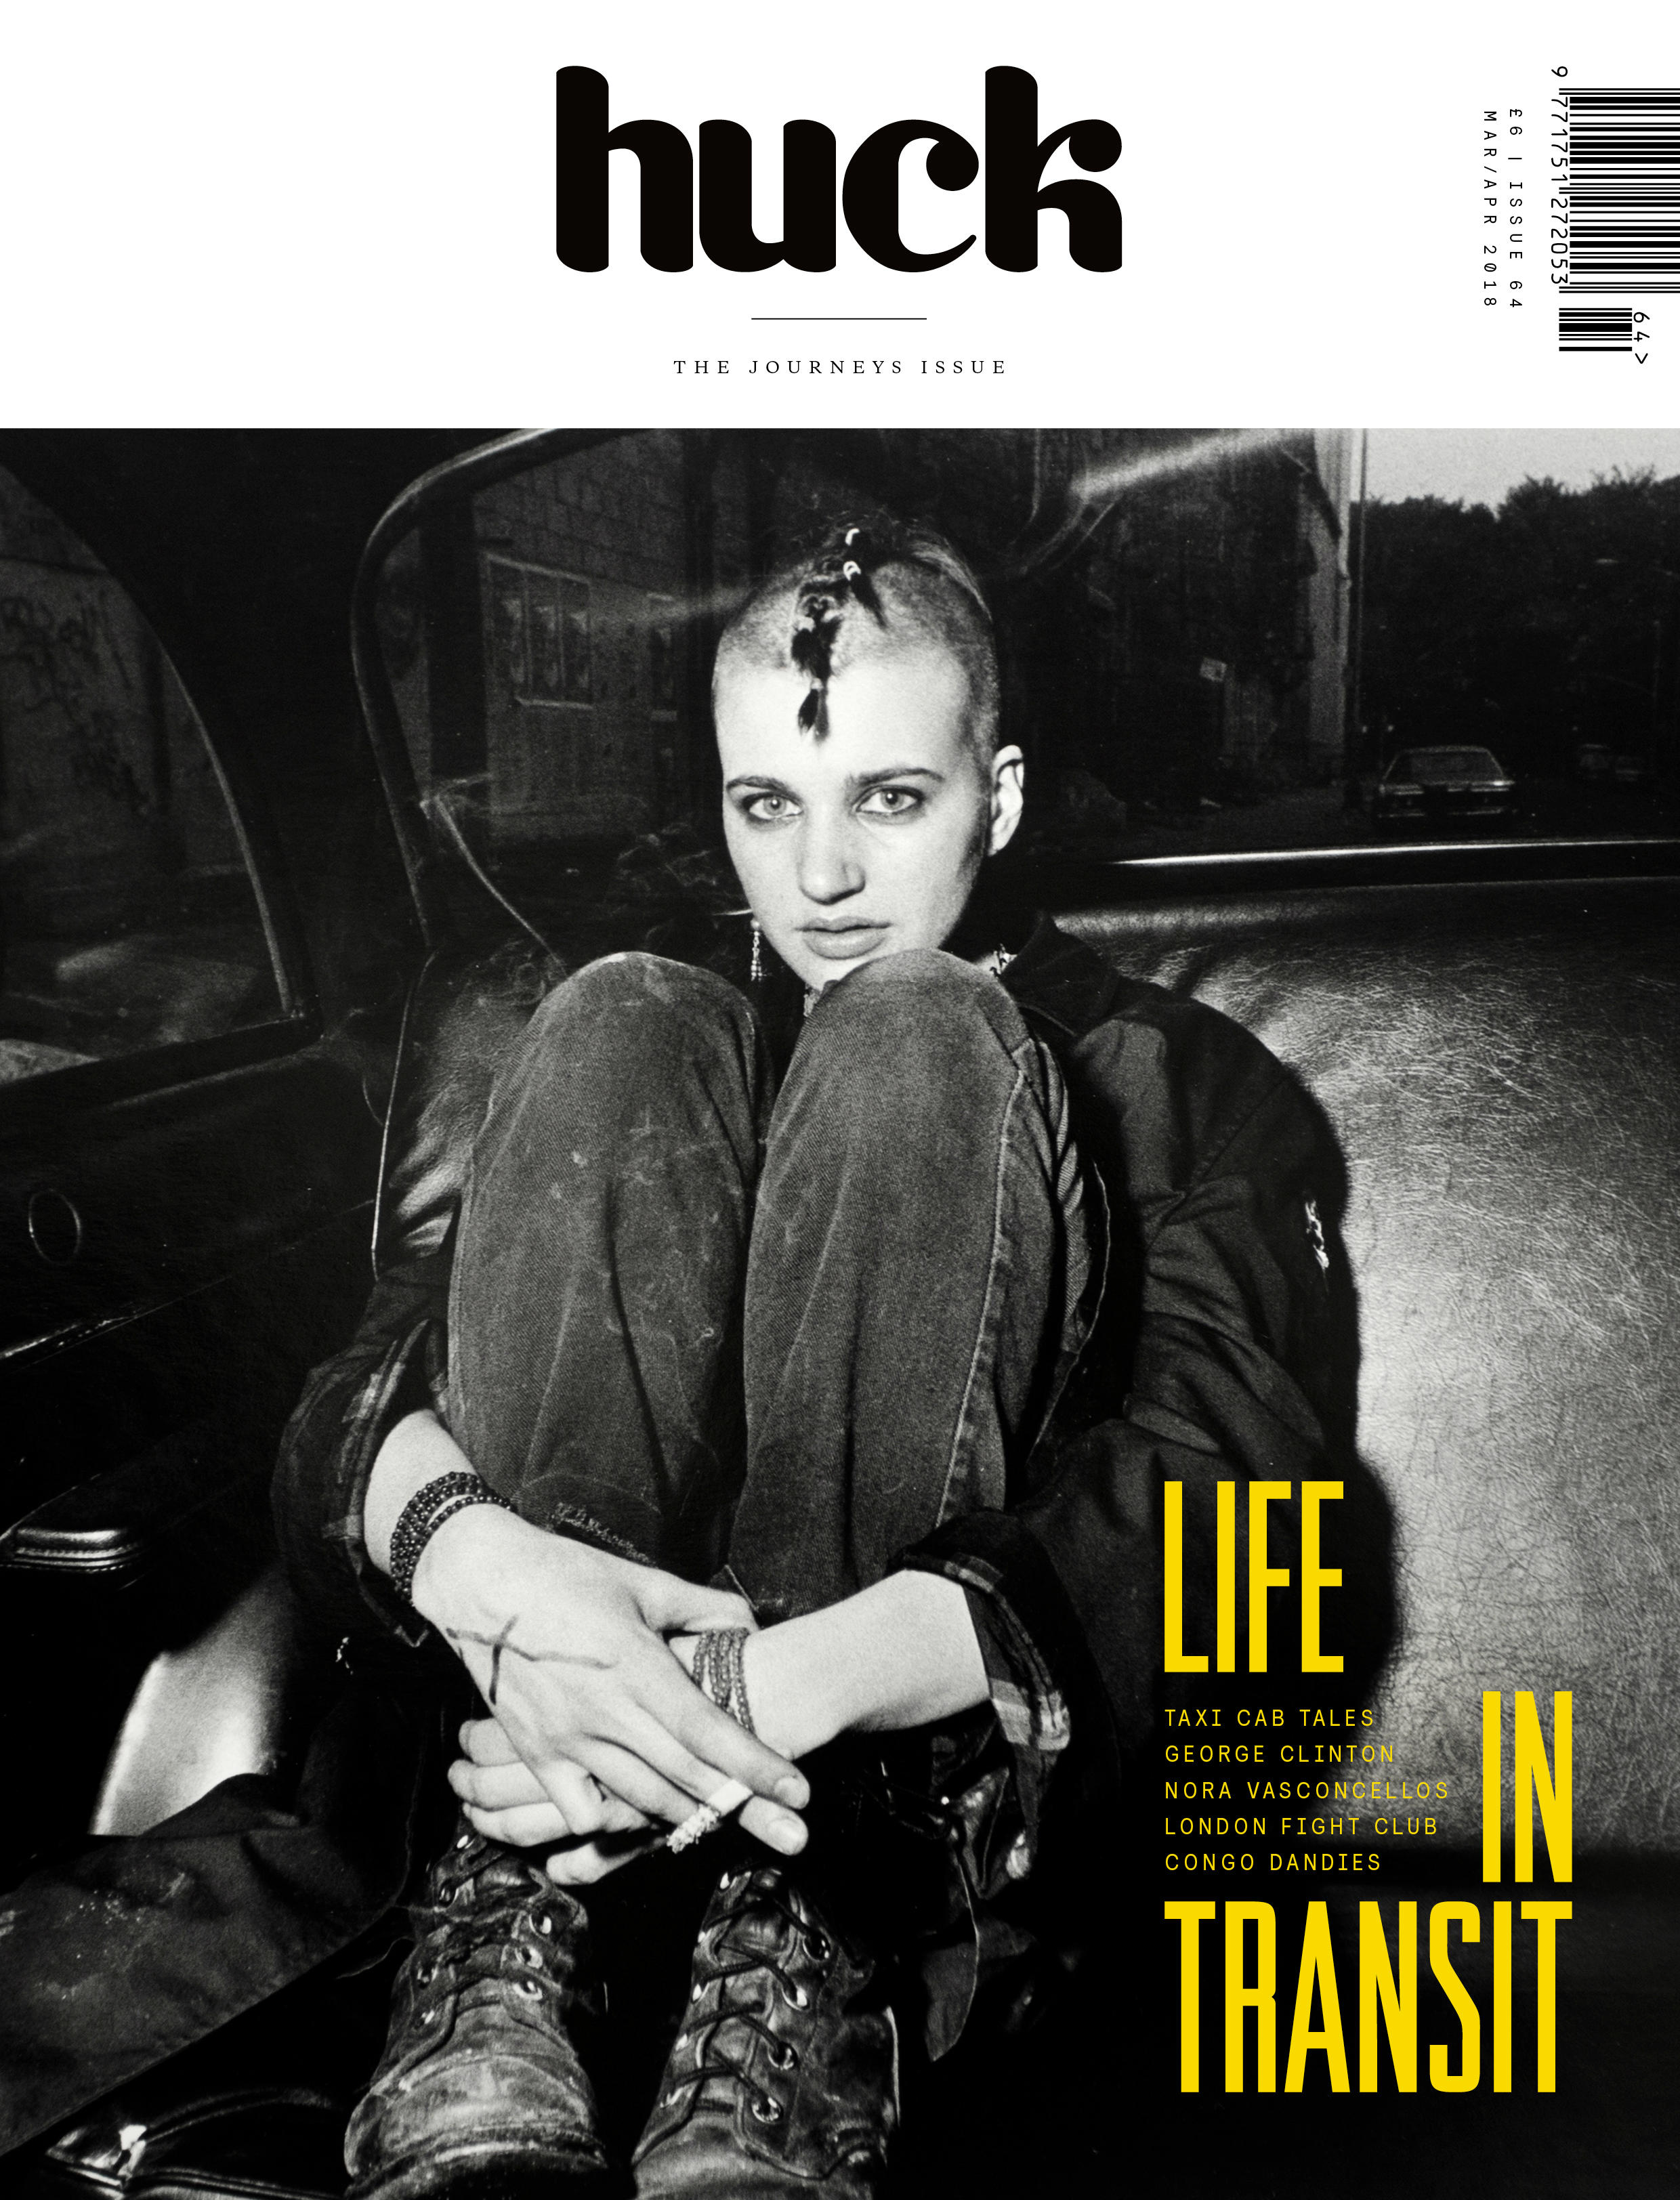 Back Issue - 64 - The Journeys Issue